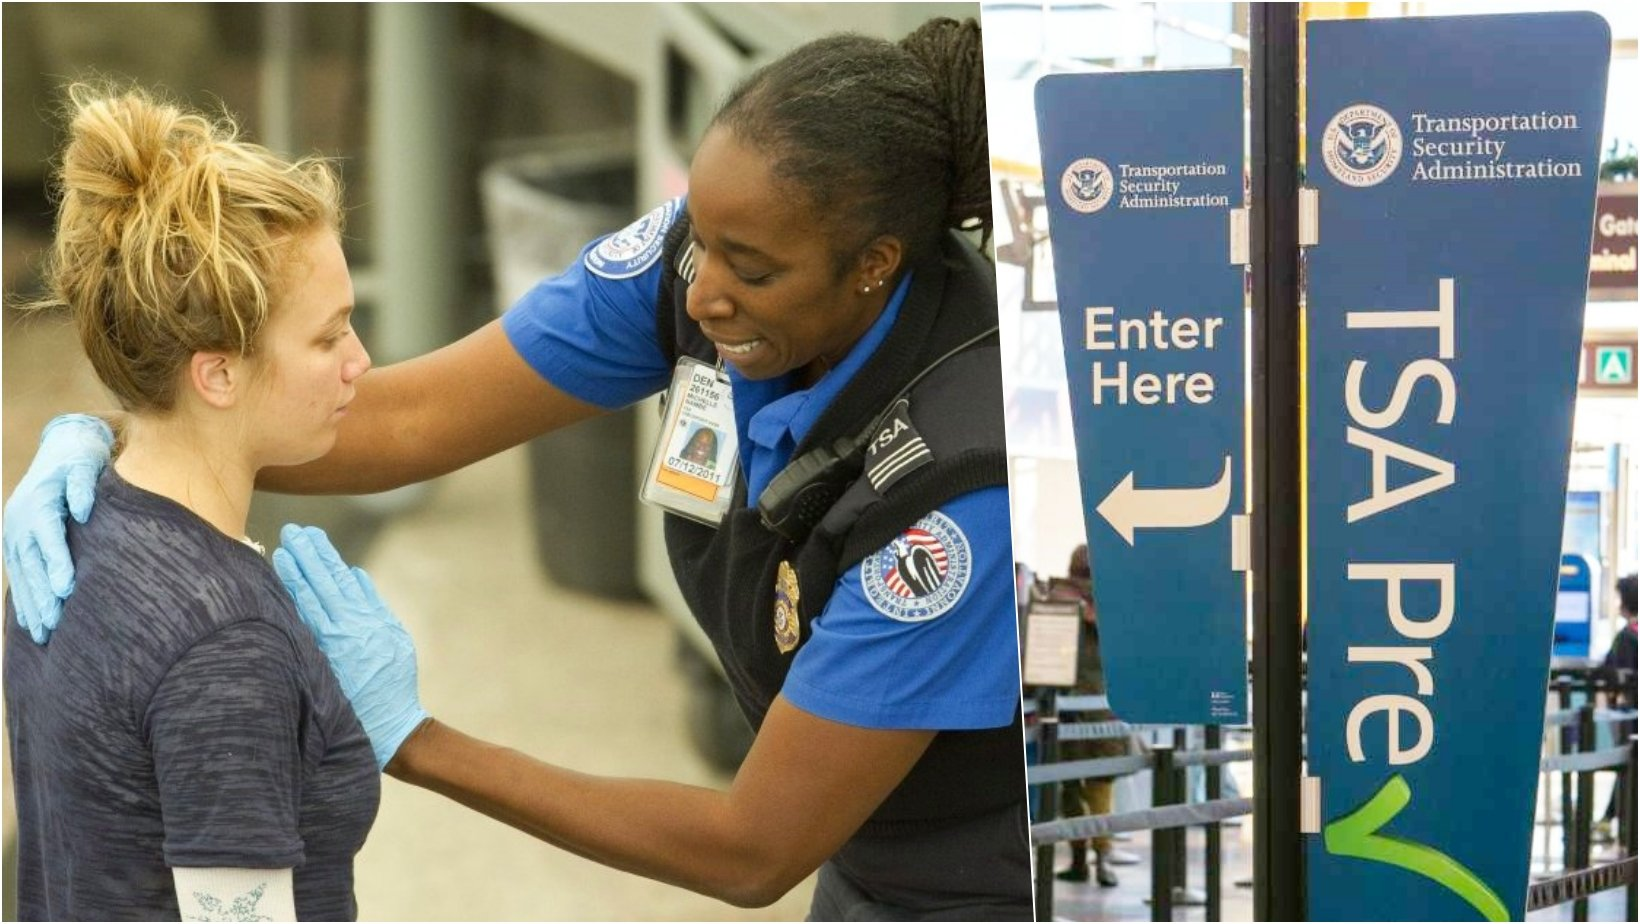 6 facebook cover 5.jpg?resize=1200,630 - Furious Mom Filed A Lawsuit Against TSA After Her Transgender Daughter Was Traumatized By Strip Search